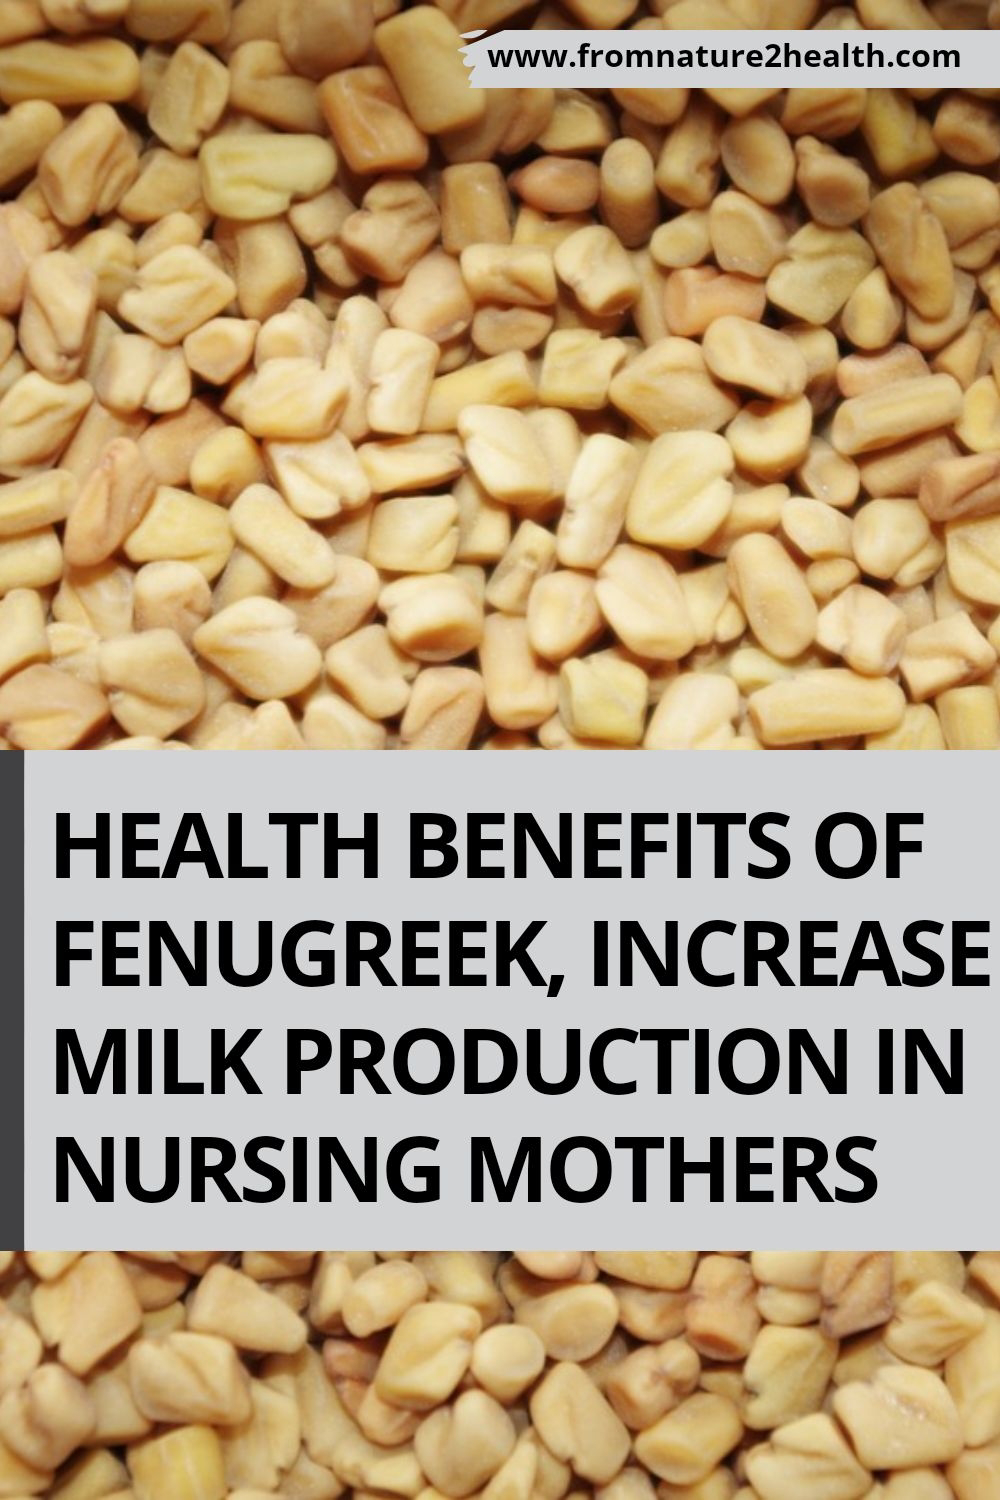 Health Benefits of Fenugreek, Increase Milk Production in Nursing Mothers